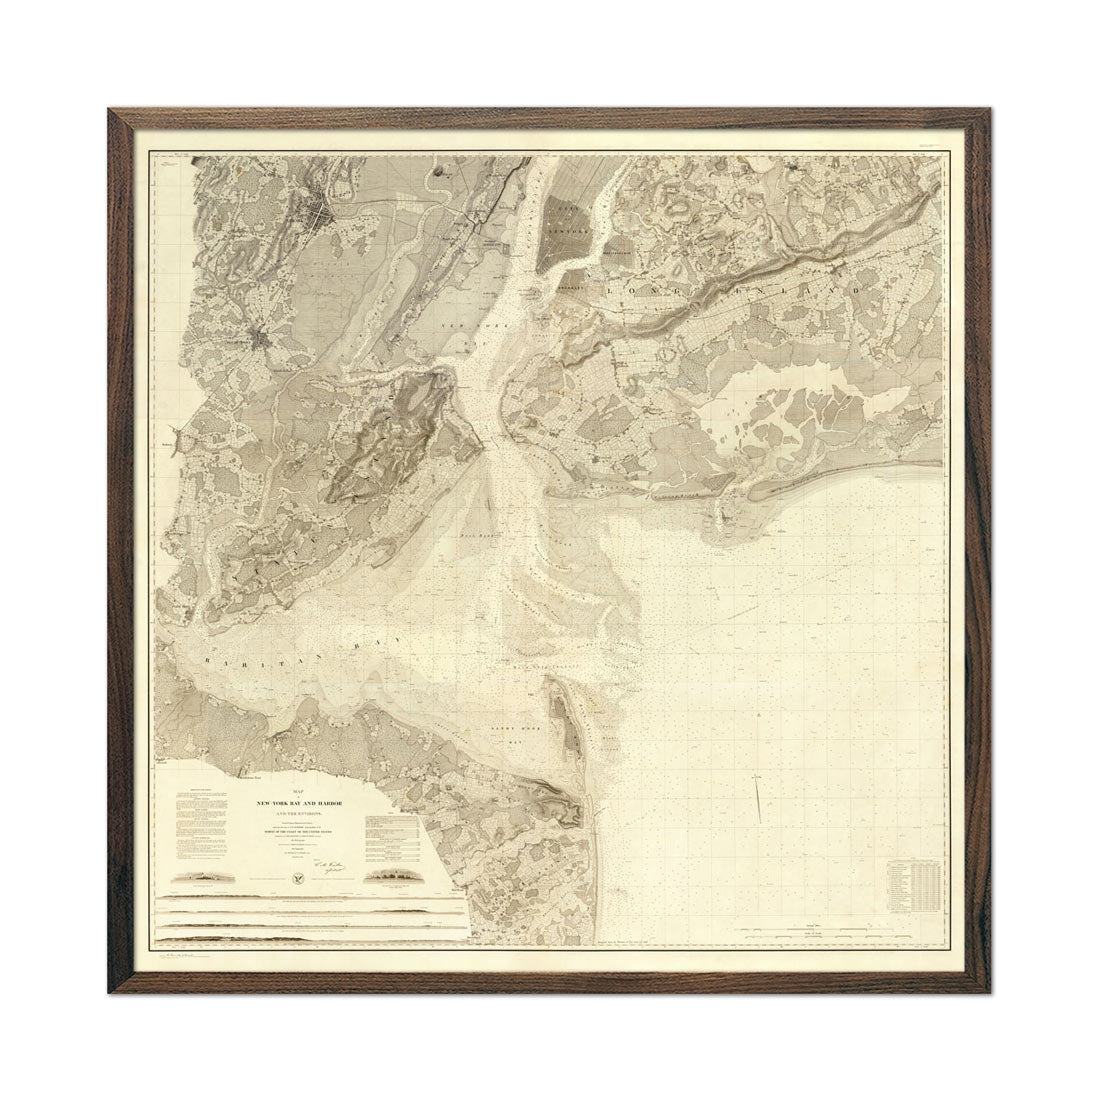 New York Bay and Harbor 1844 Map